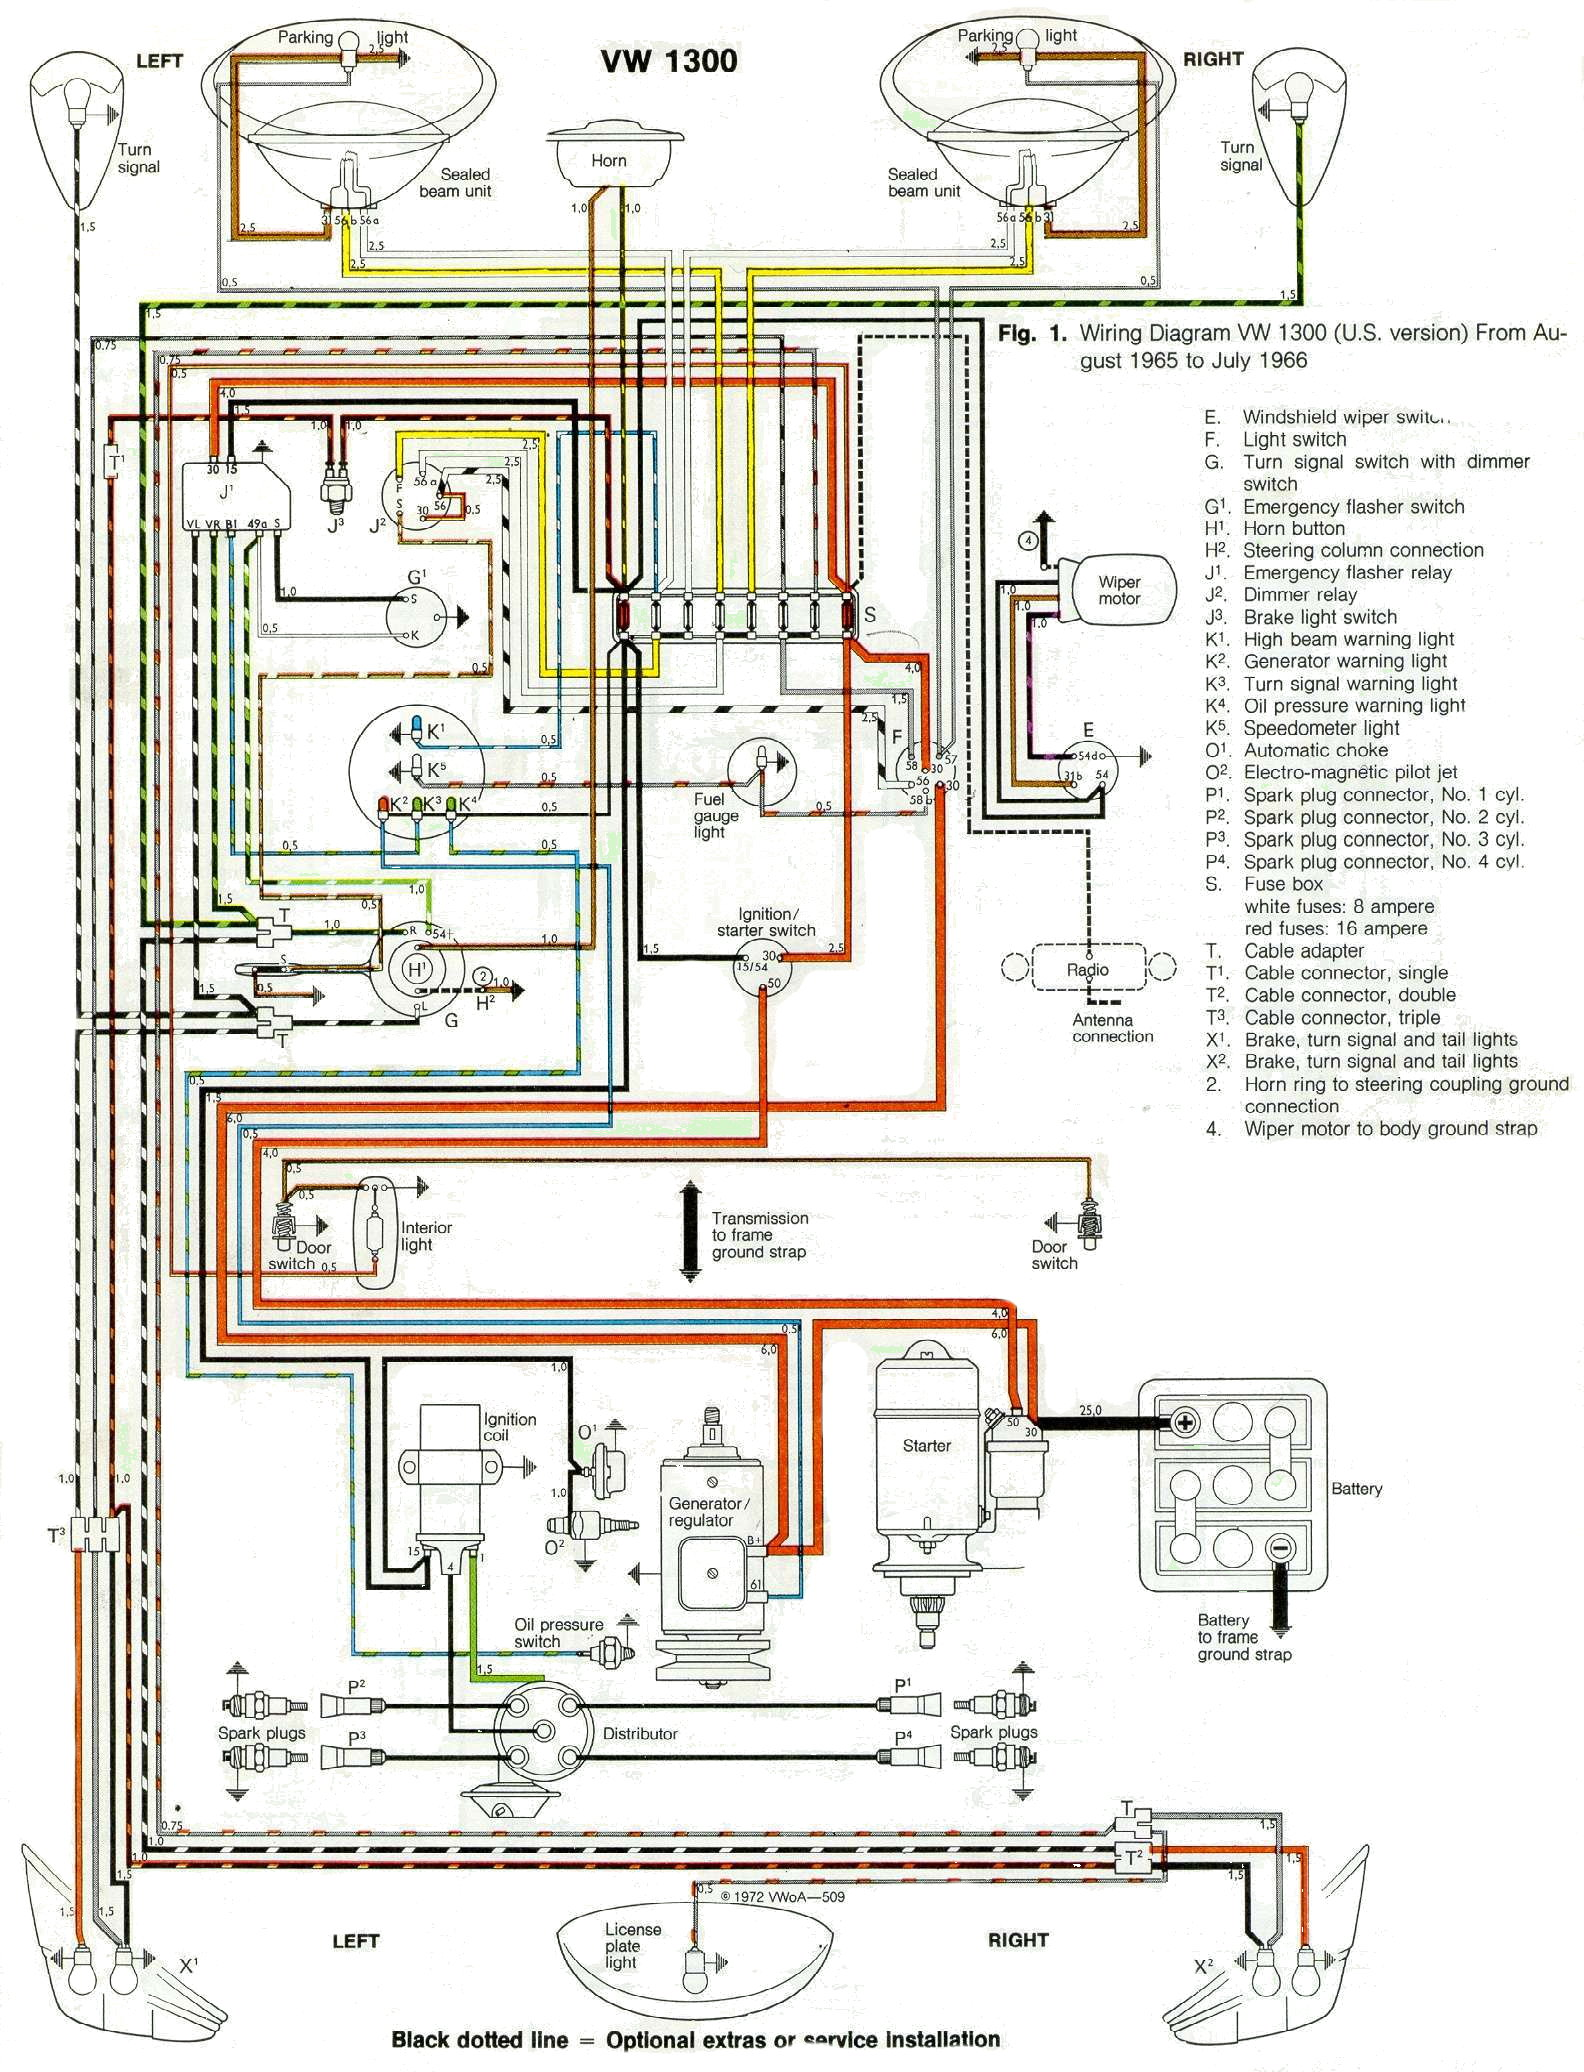 1966 Wiring 1966 wiring diagram vw beetle wiring harness at readyjetset.co